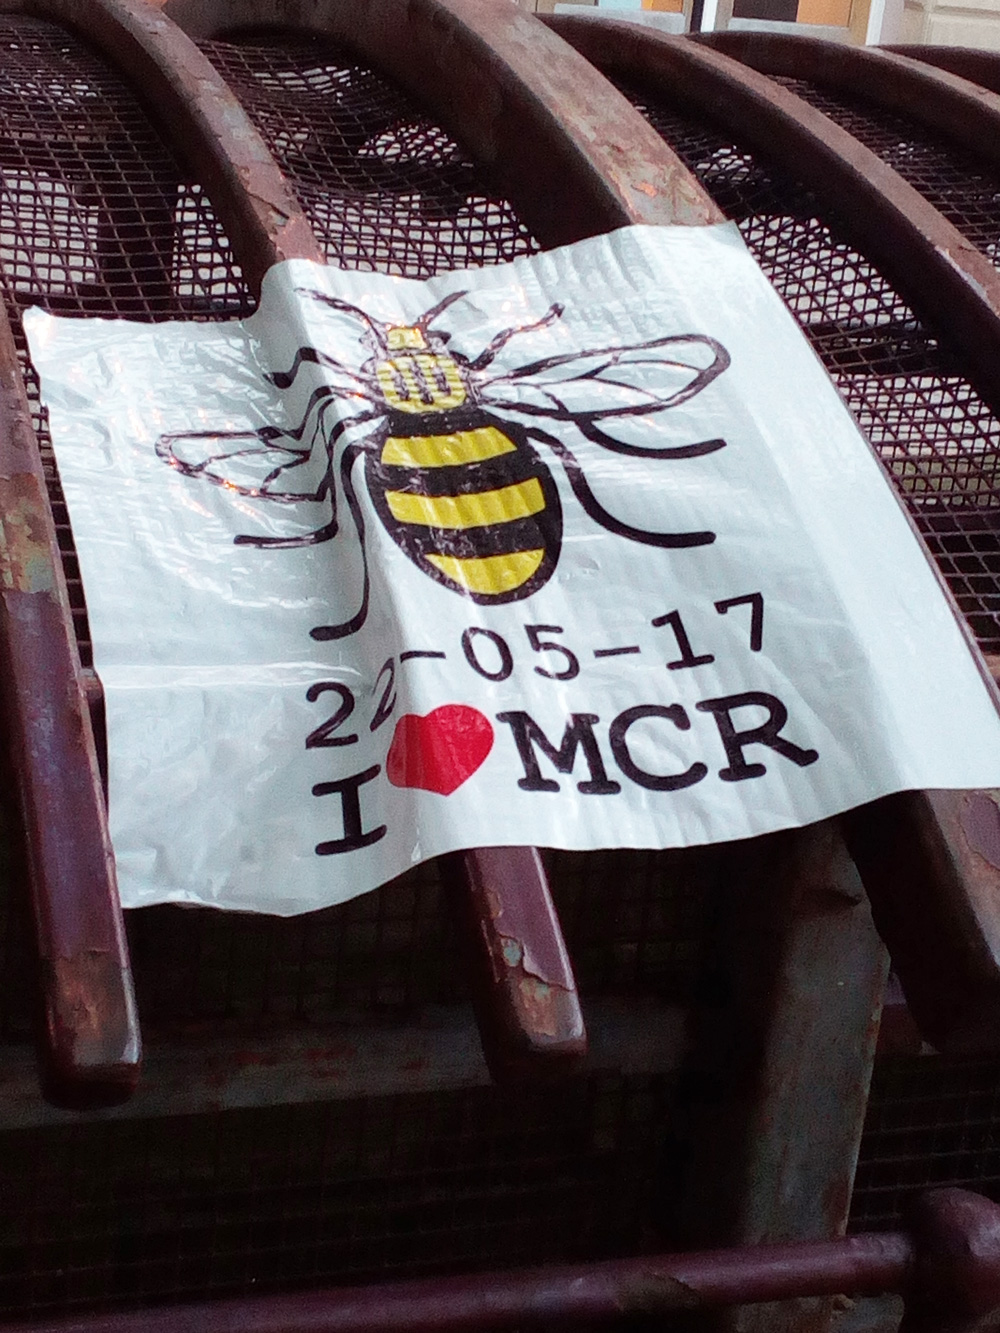 After the Arena bombing there was an outpouring of grief and popular support.